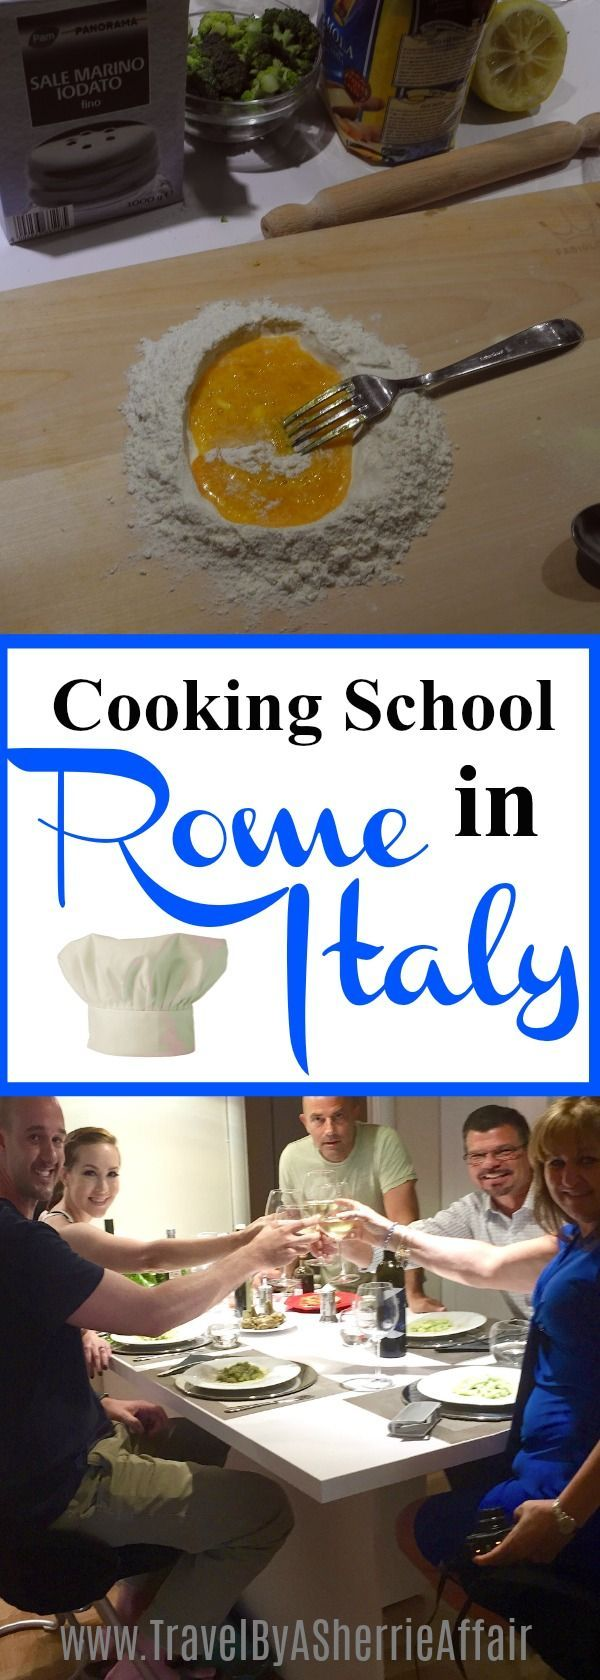 how about on your trip to Rome Italy you fit in a day of cooking school?  You will not regret it! Fun, educational, delicious and you get to meet new friends.  Learn how to cook authentic Italian food from on e of the best chefs:  Chef Fabio Bongianni.   #cookingschool #cookinginRome #Rome #Italy #ChefFabioBongianni #Chef #food #delicious #Italianfood #Italian #travel #travelexperience #pasta